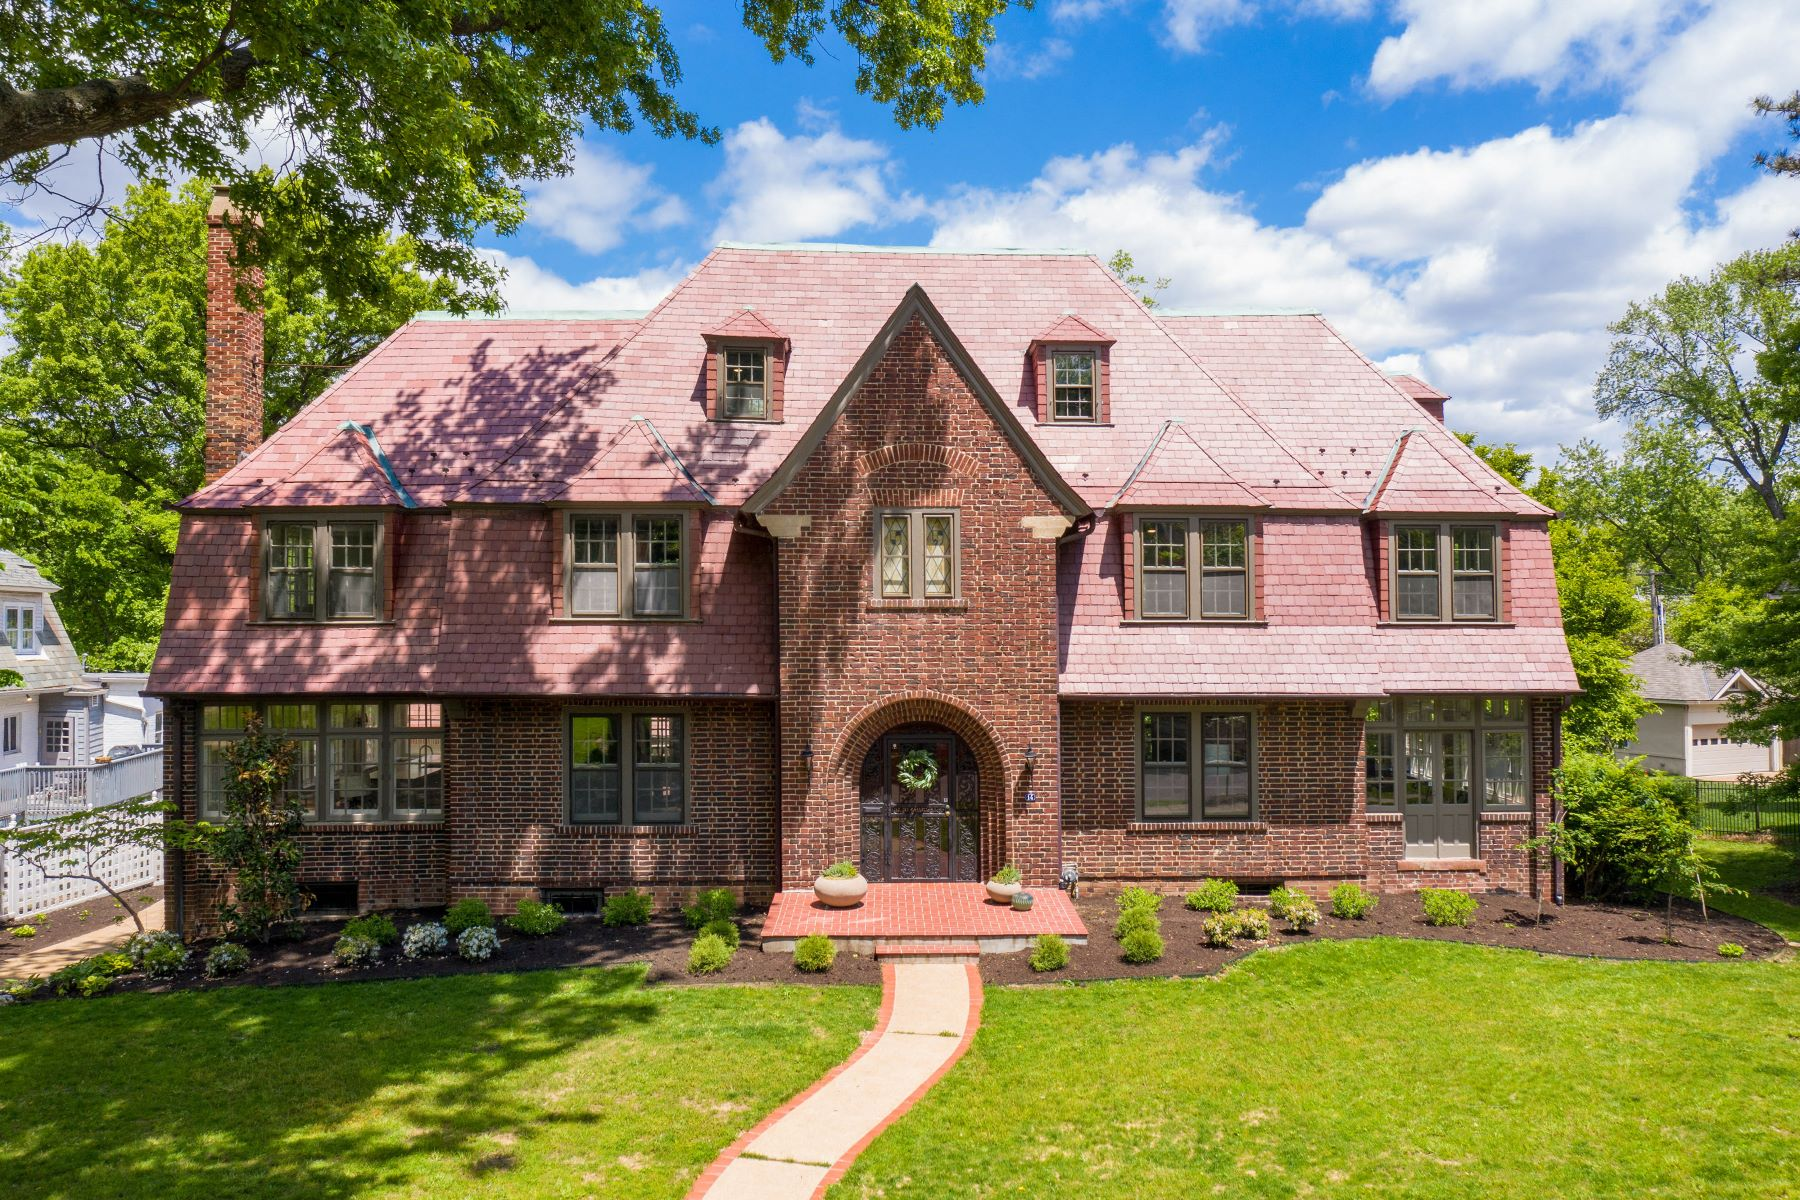 Single Family Homes for Sale at Historic Elegance, Reimagined 14 Princeton Avenue University City, Missouri 63130 United States